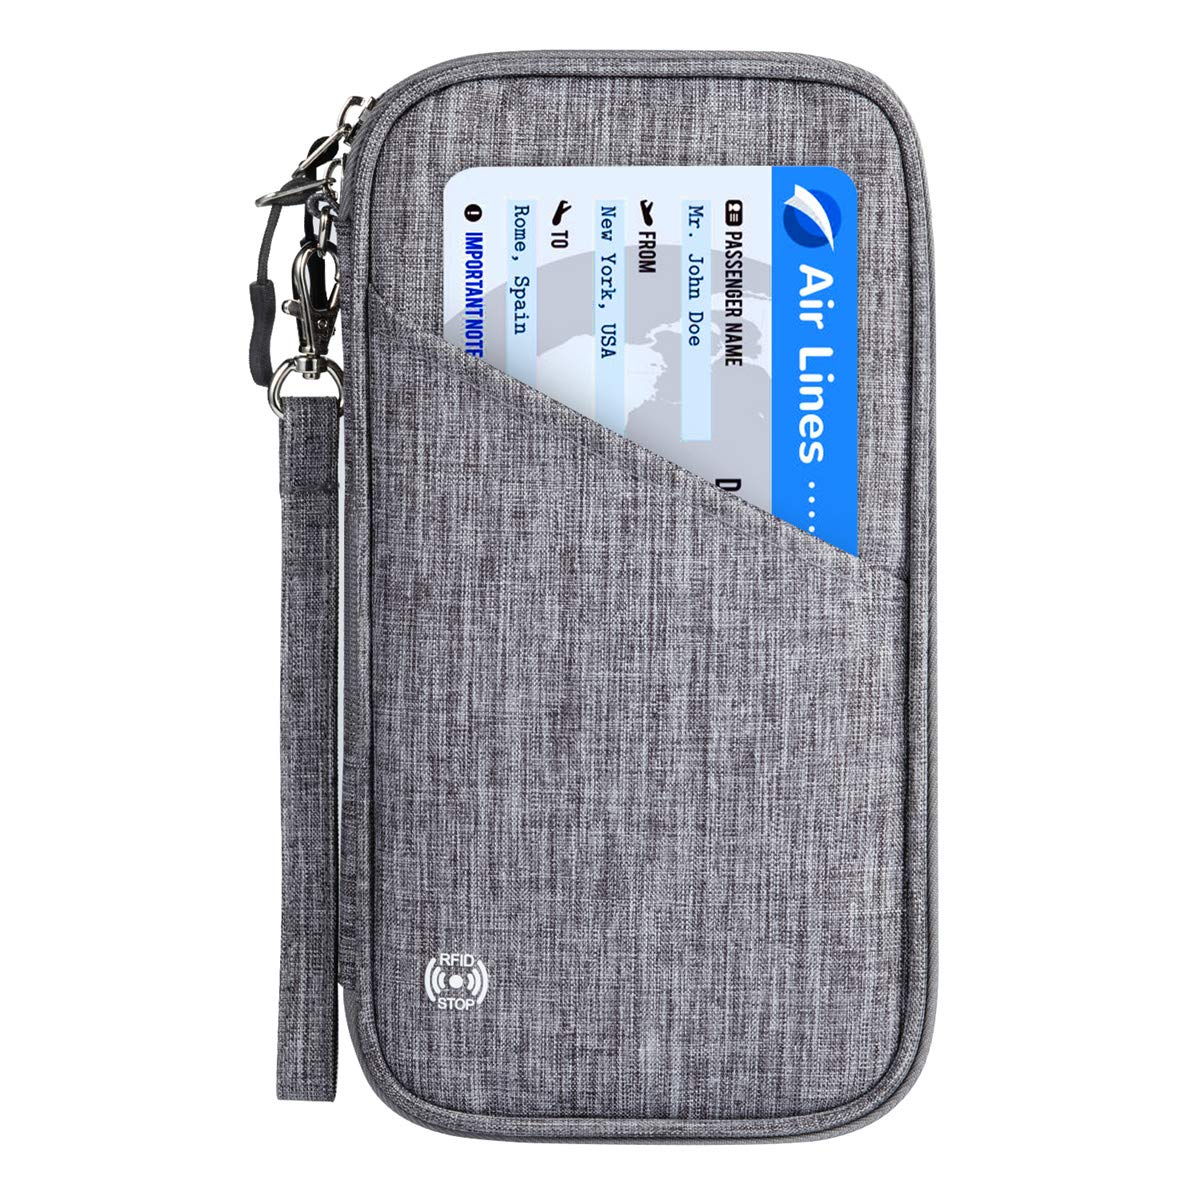 Vemingo Family Passport Holder with Accordion Design RFID - Blocking Travel Wallet Ticket Holder Document Organizer with Zipper for Women & Men, Fits 4 Passports (Grey, Large)